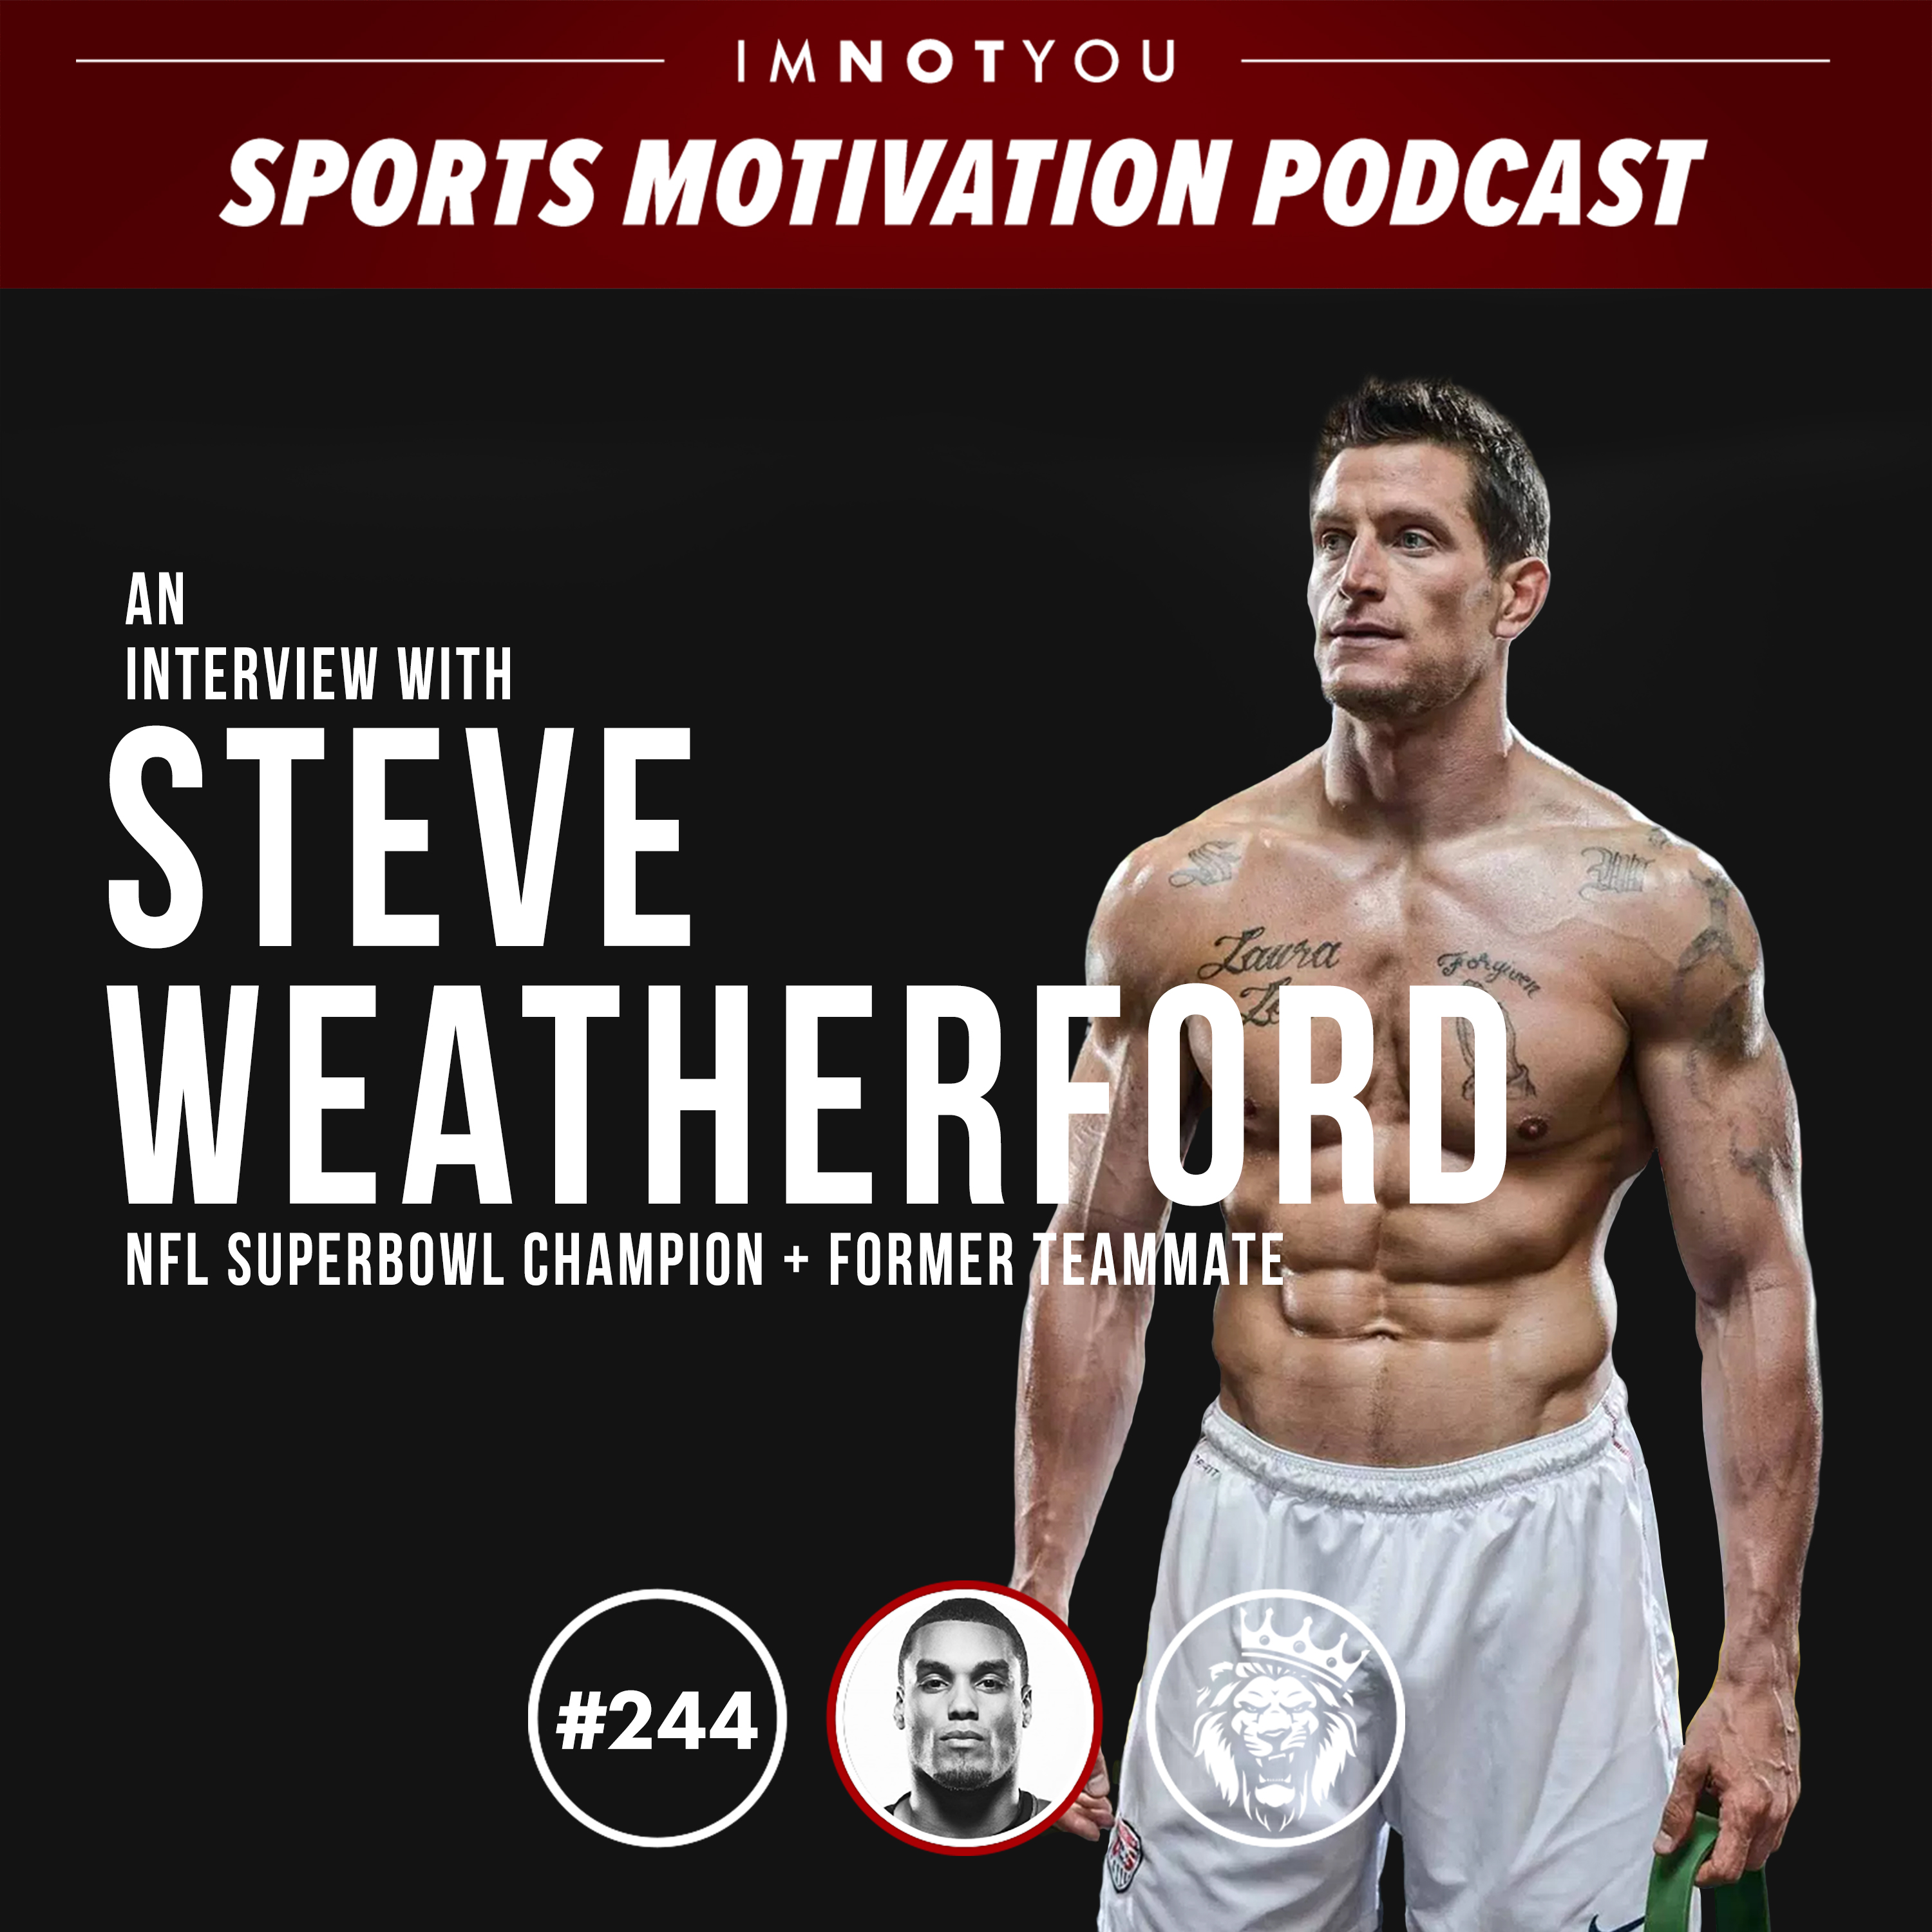 244: Super Bowl Champion and Former Teammate Steve Weatherford